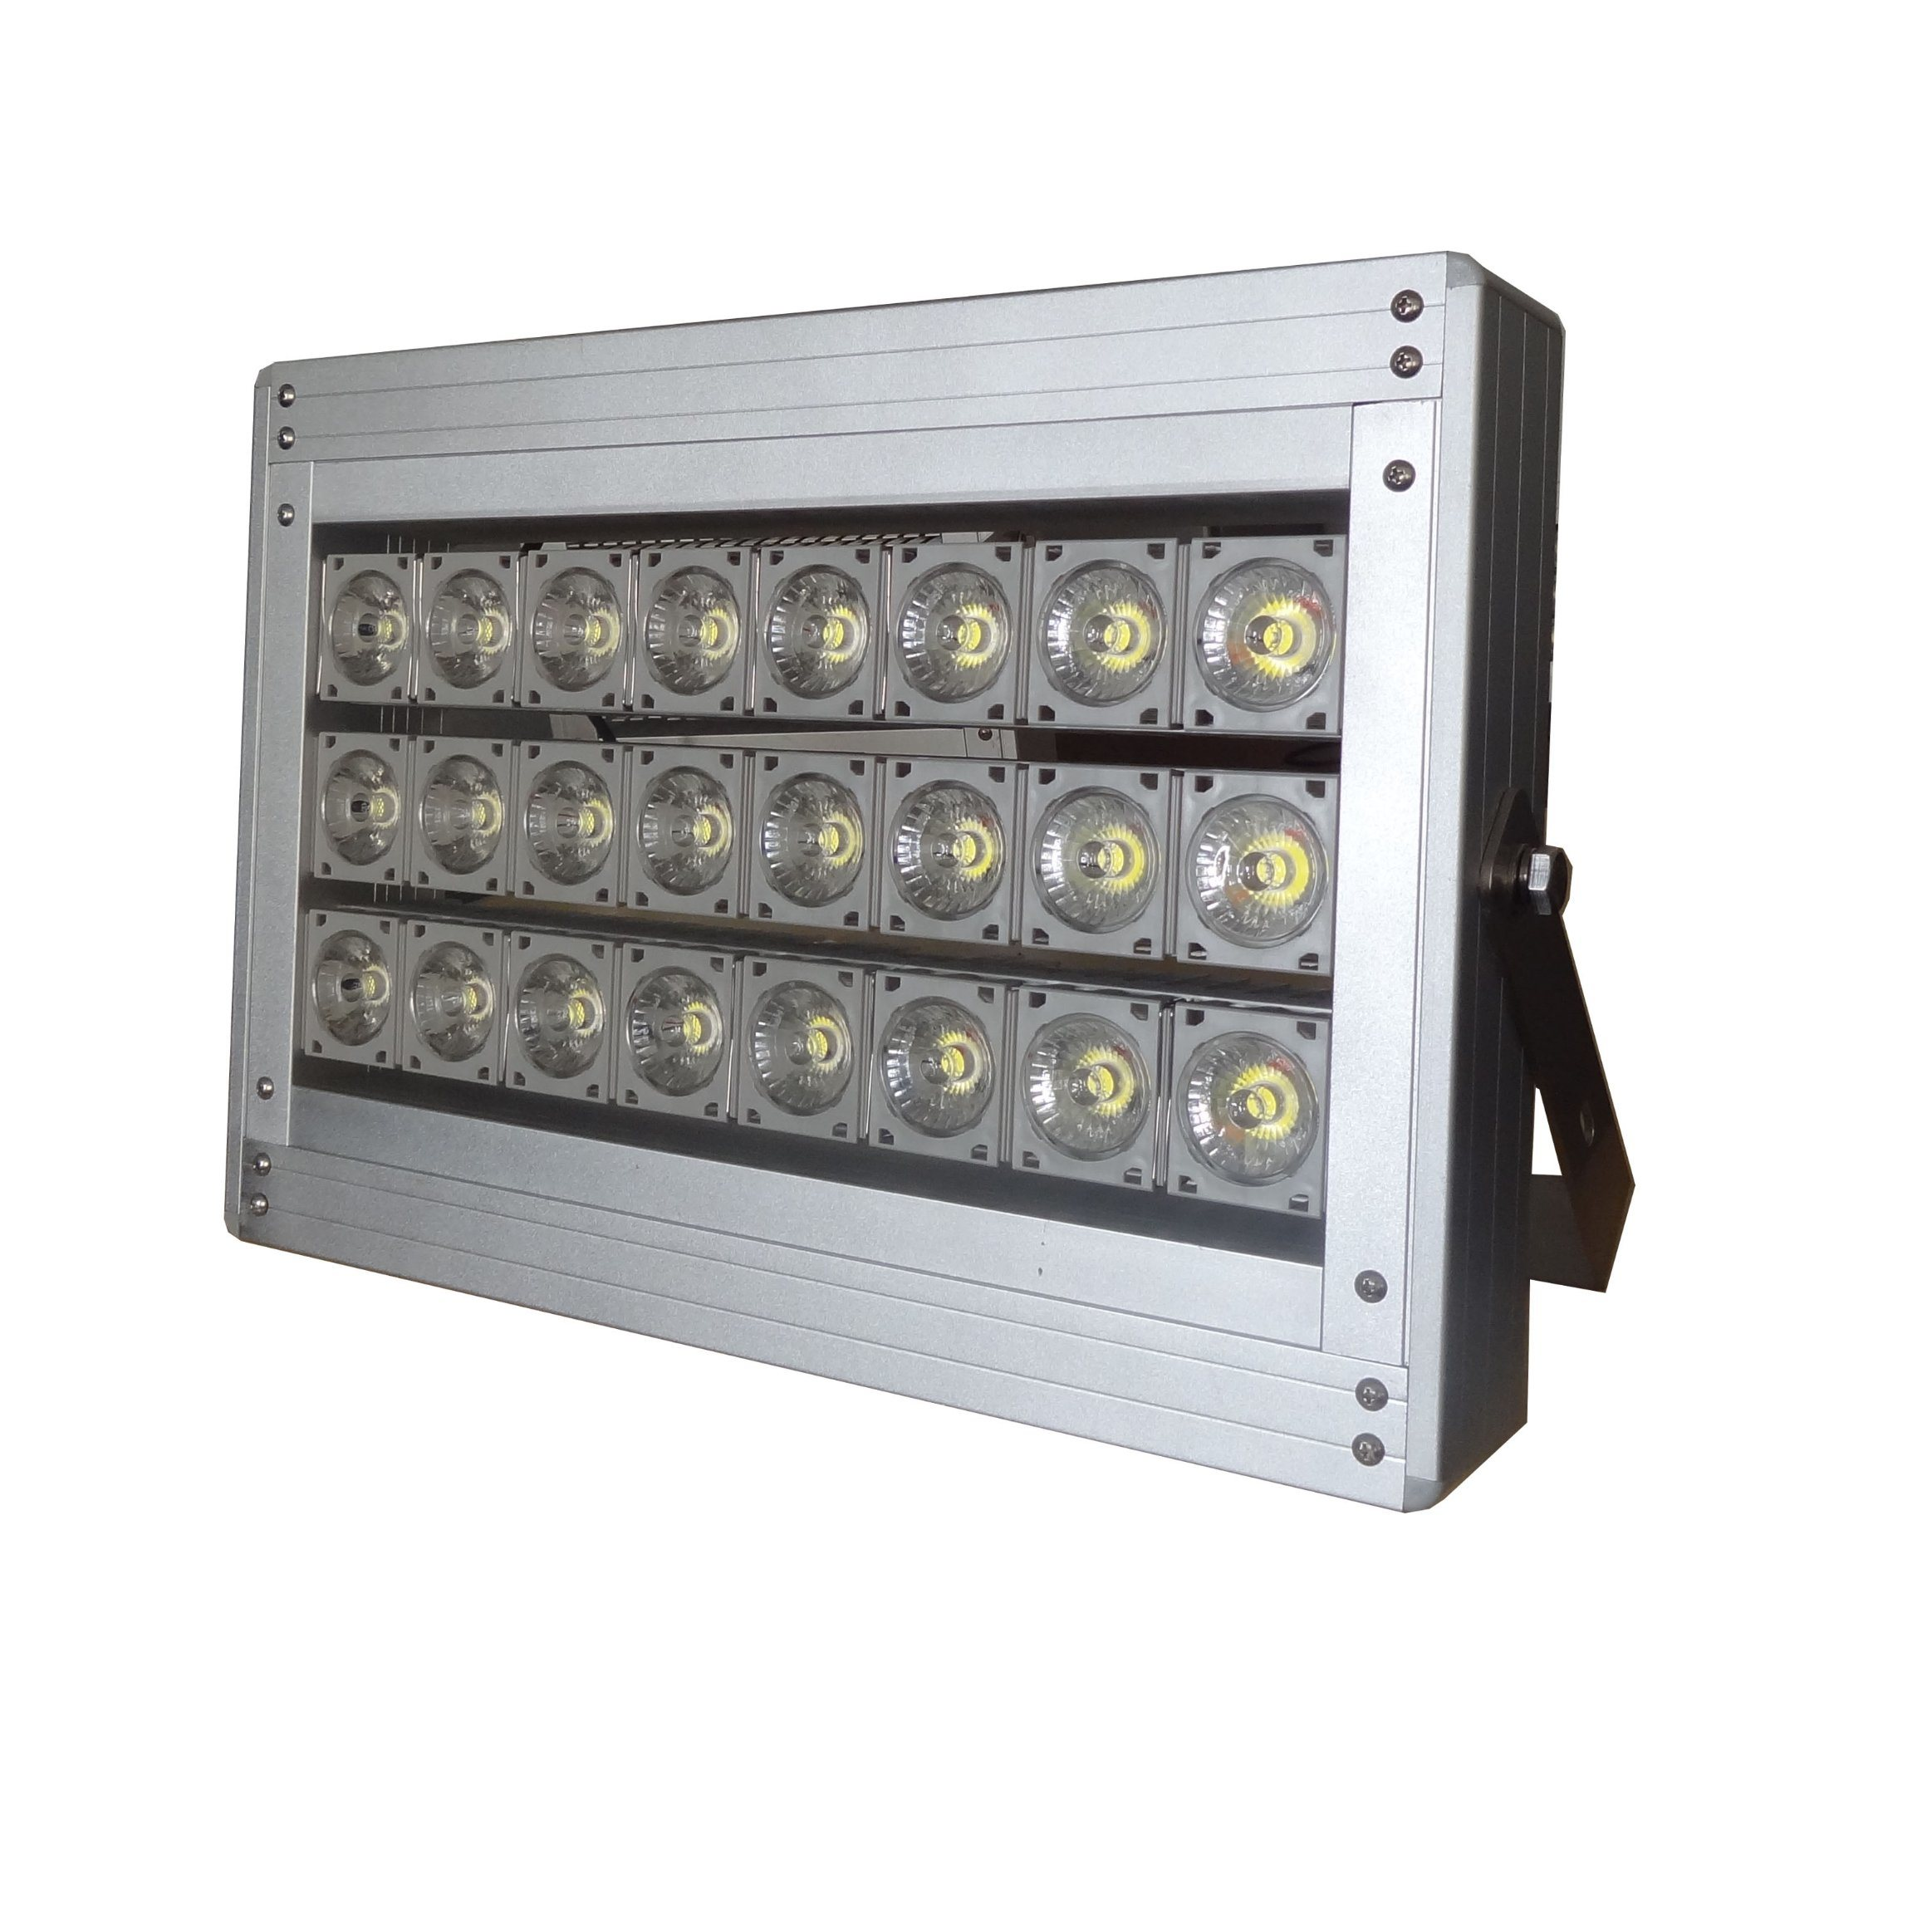 Hot Item Solid State 100watt Heat Resistant Led Flood Light Works At 100 Degree Celsius Waterproof